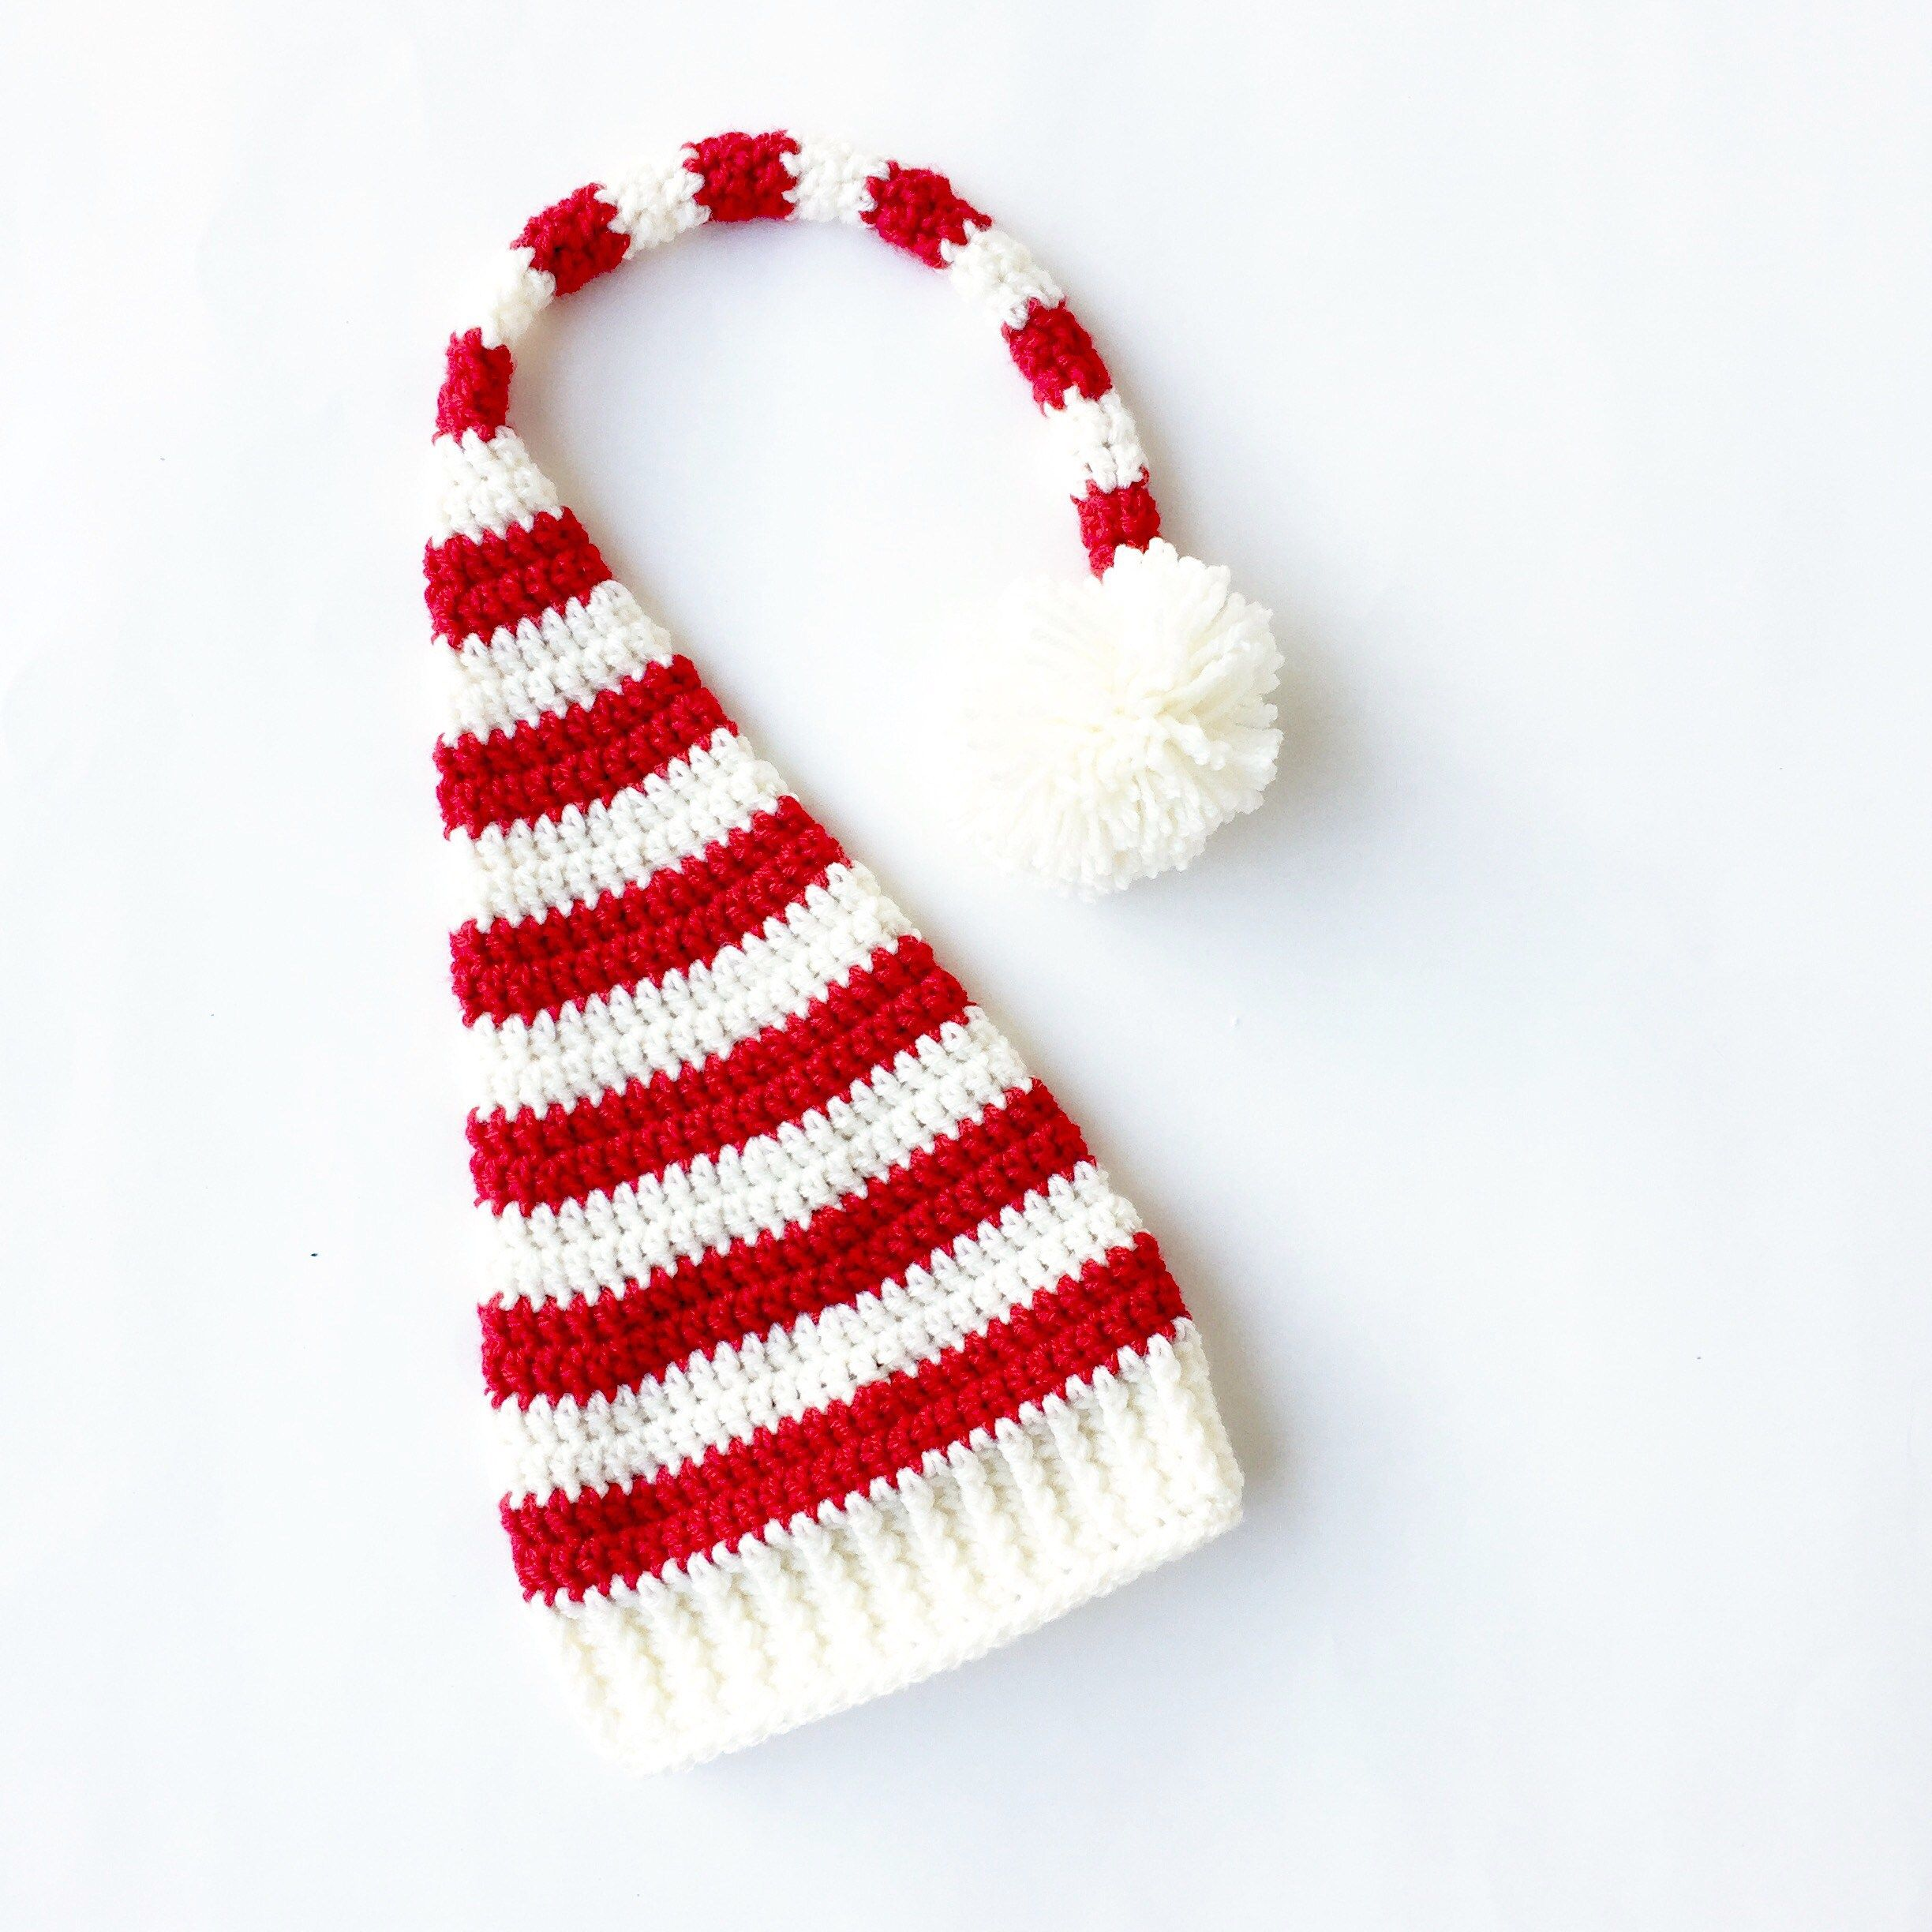 Elf Hat by Ramsileigh Crochet | The crochet and knitting corner ...